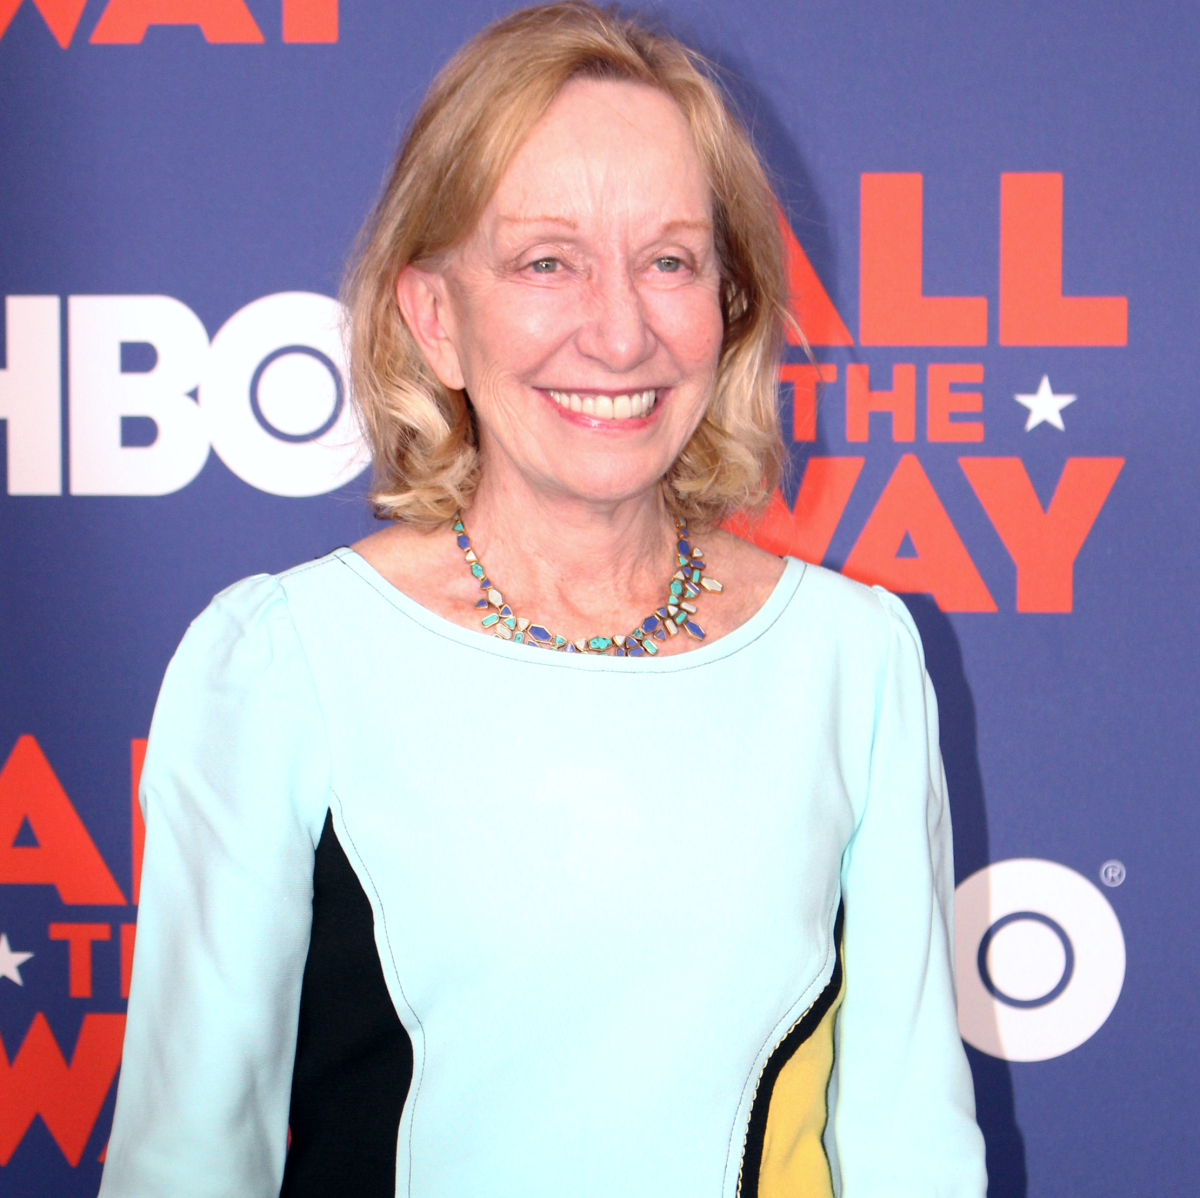 Austin premiere HBO film All the Way LBJ red carpet Doris Kearns Goodwin